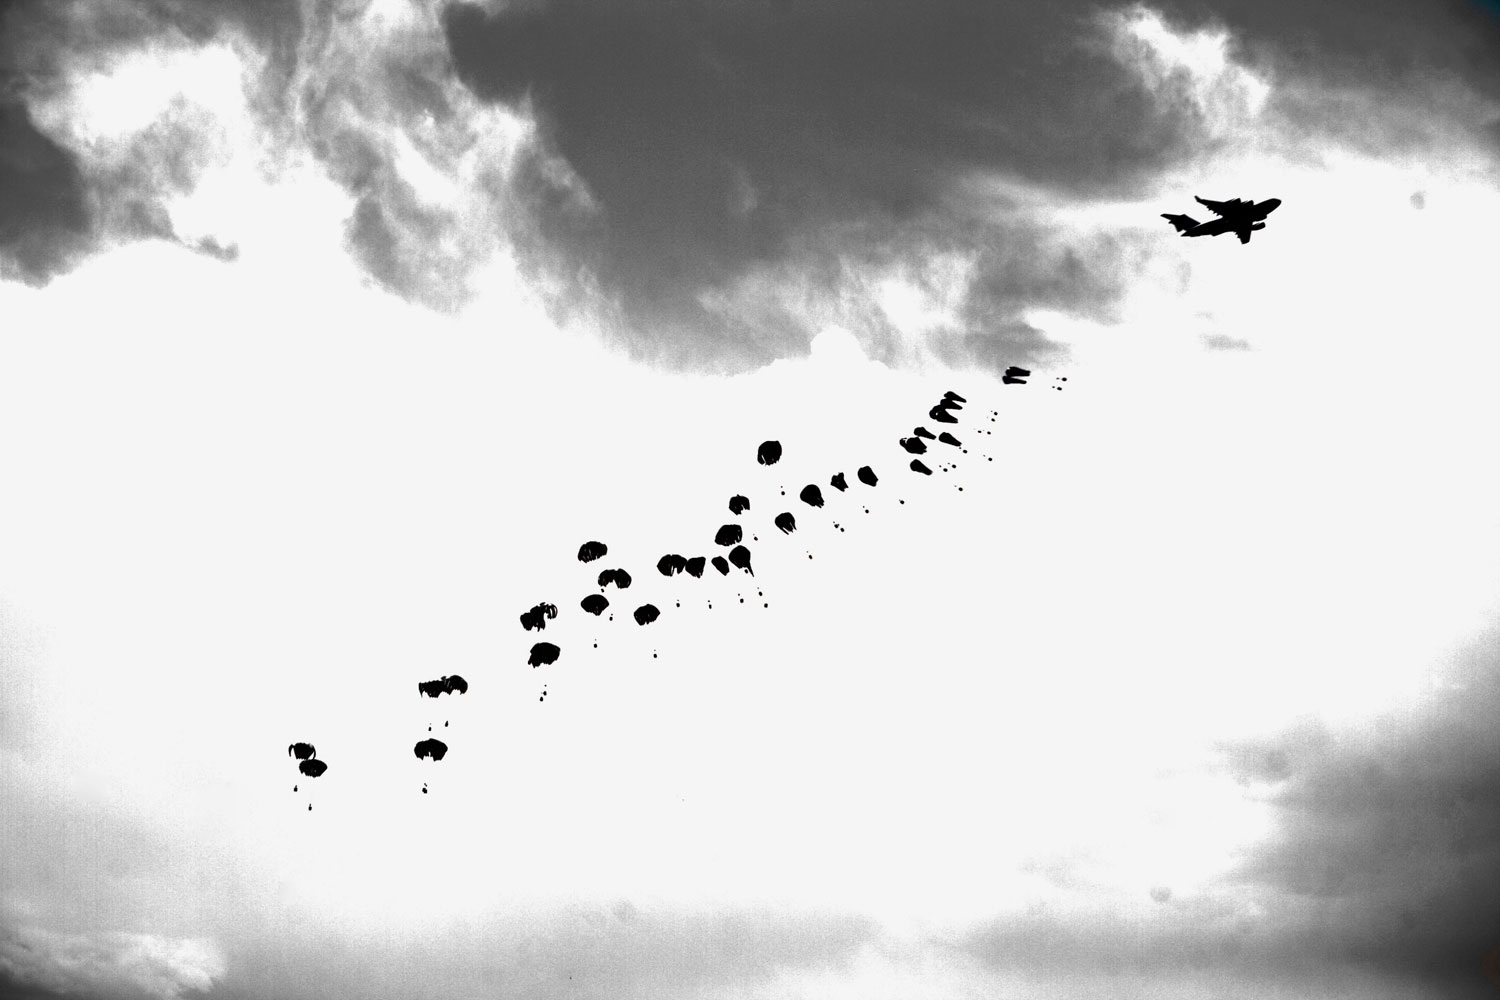 June 4, 2011. Food supplies for U.S. Marines hanging off small parachutes are dropped from a plane as a sandstorm approaches Helmand Province in southern Afghanistan.